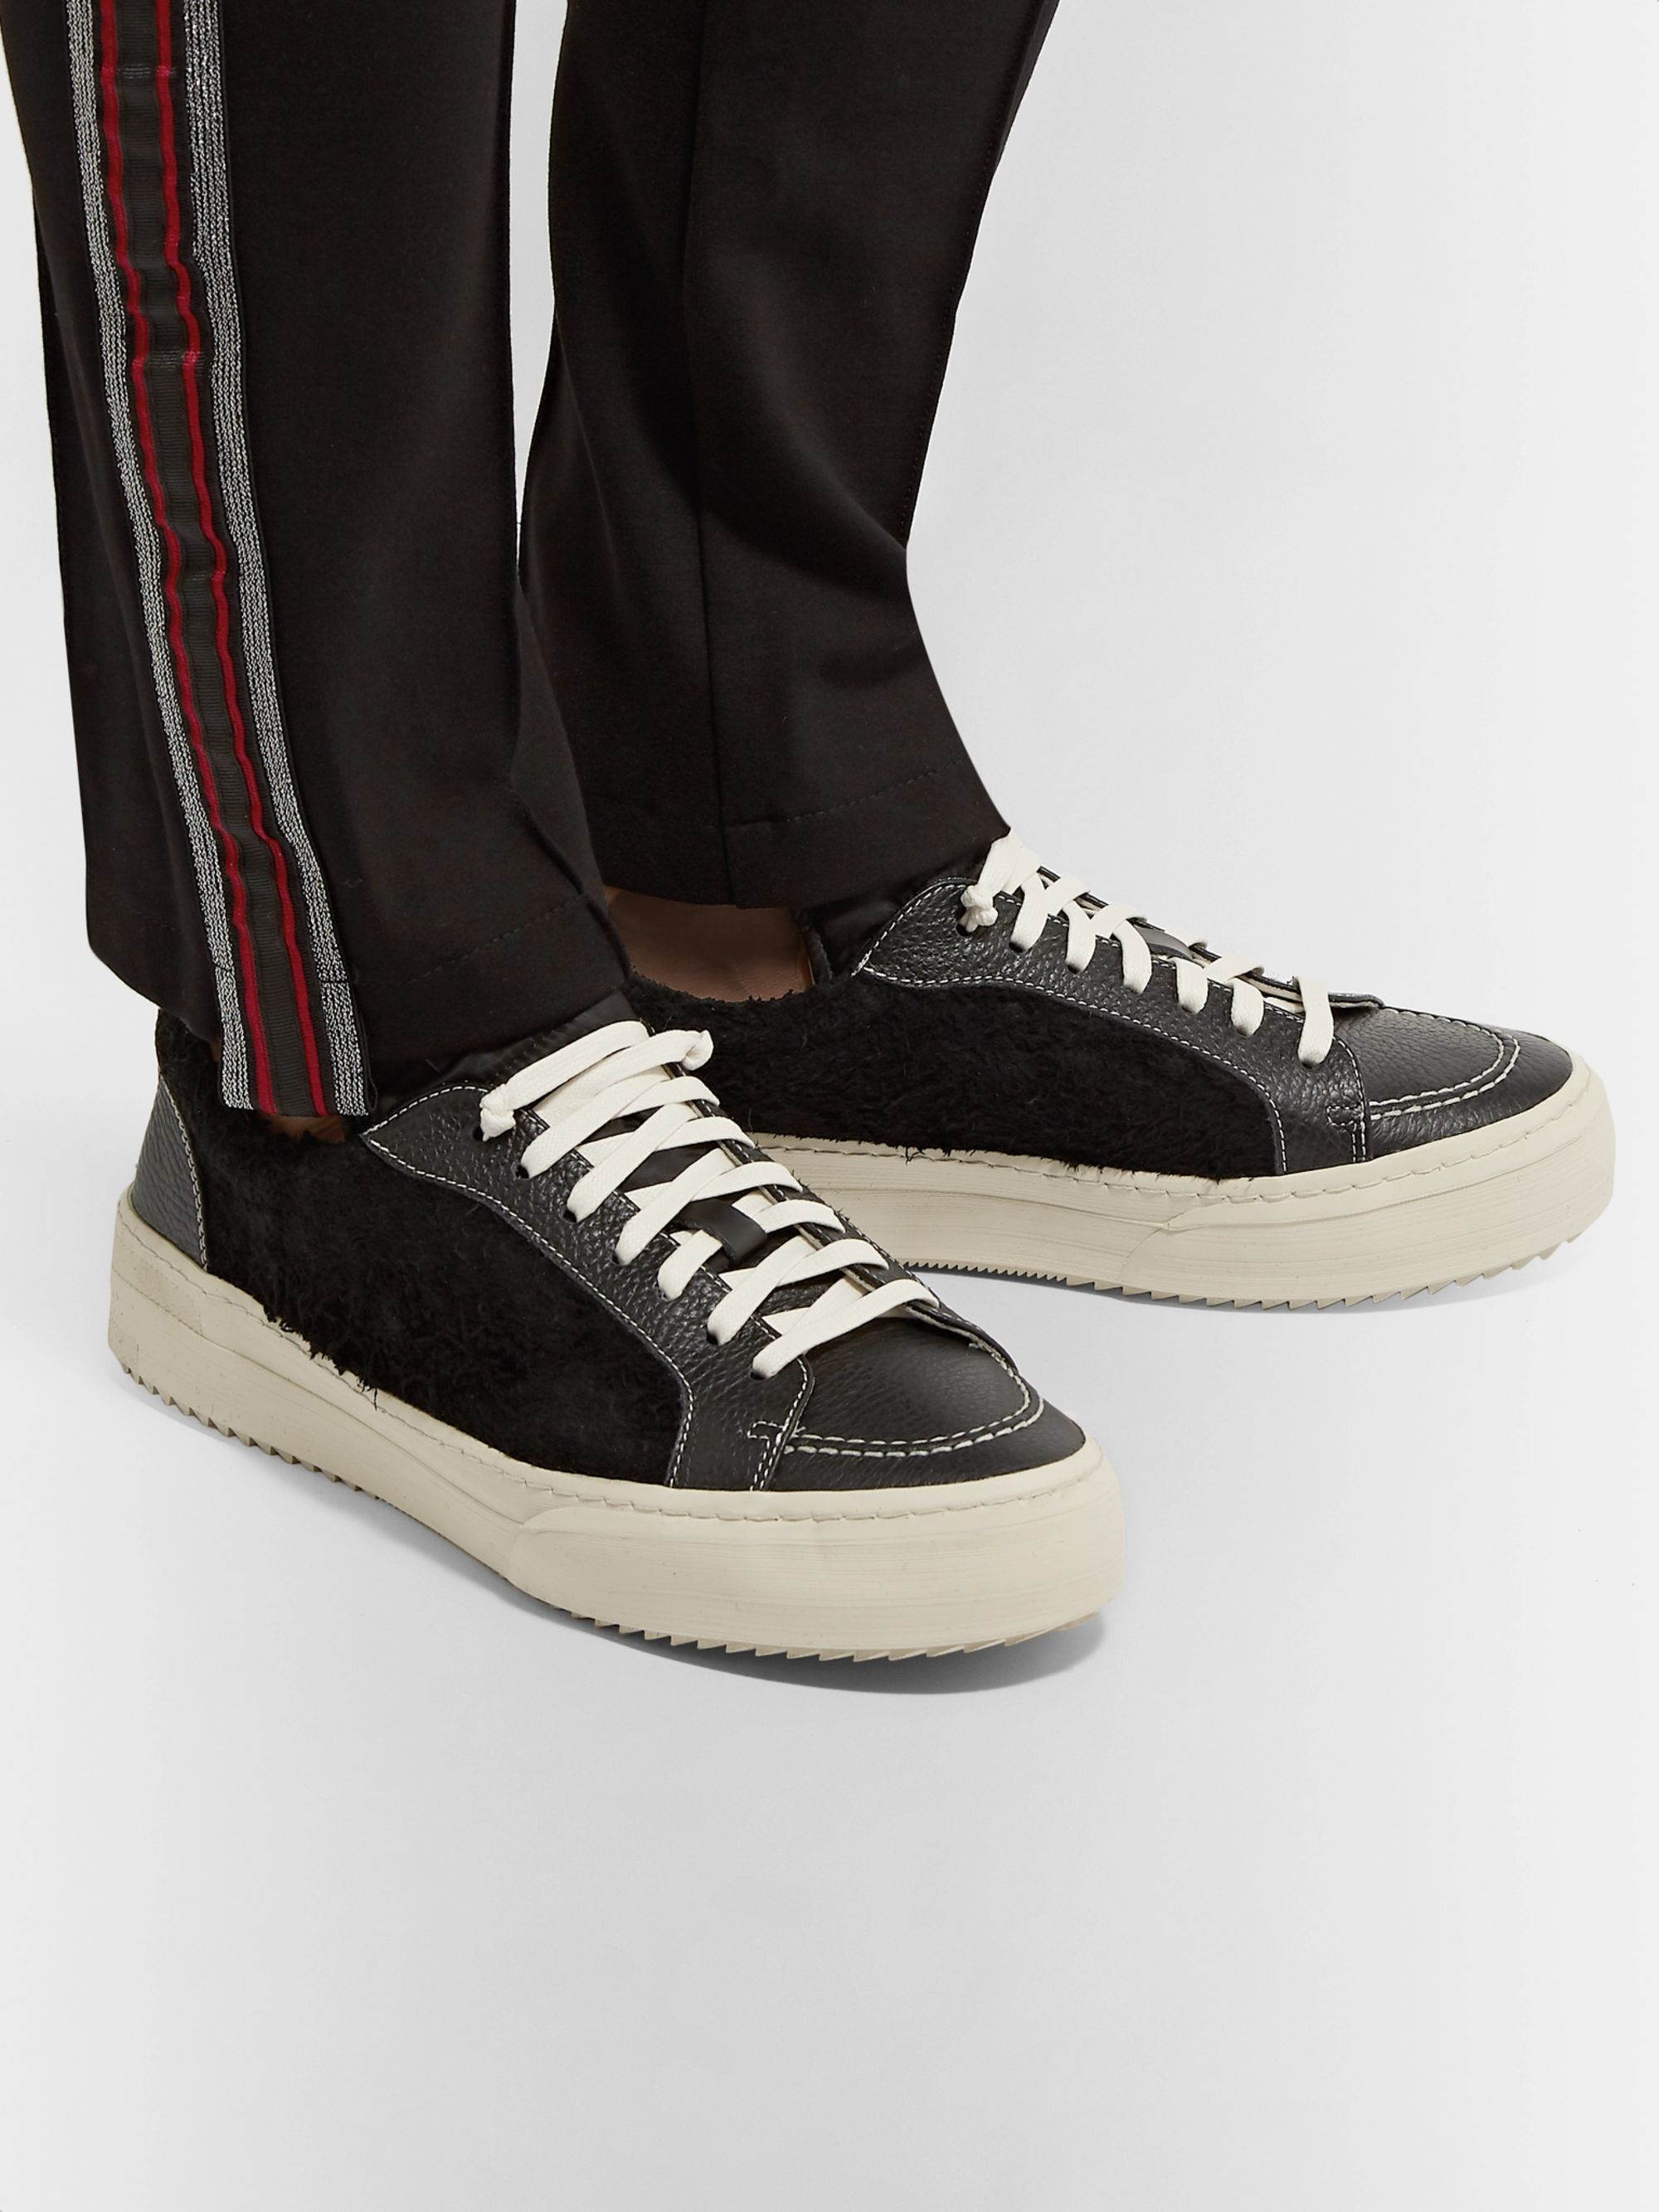 Rhude RH V1 Full-Grain Leather and Suede Sneakers